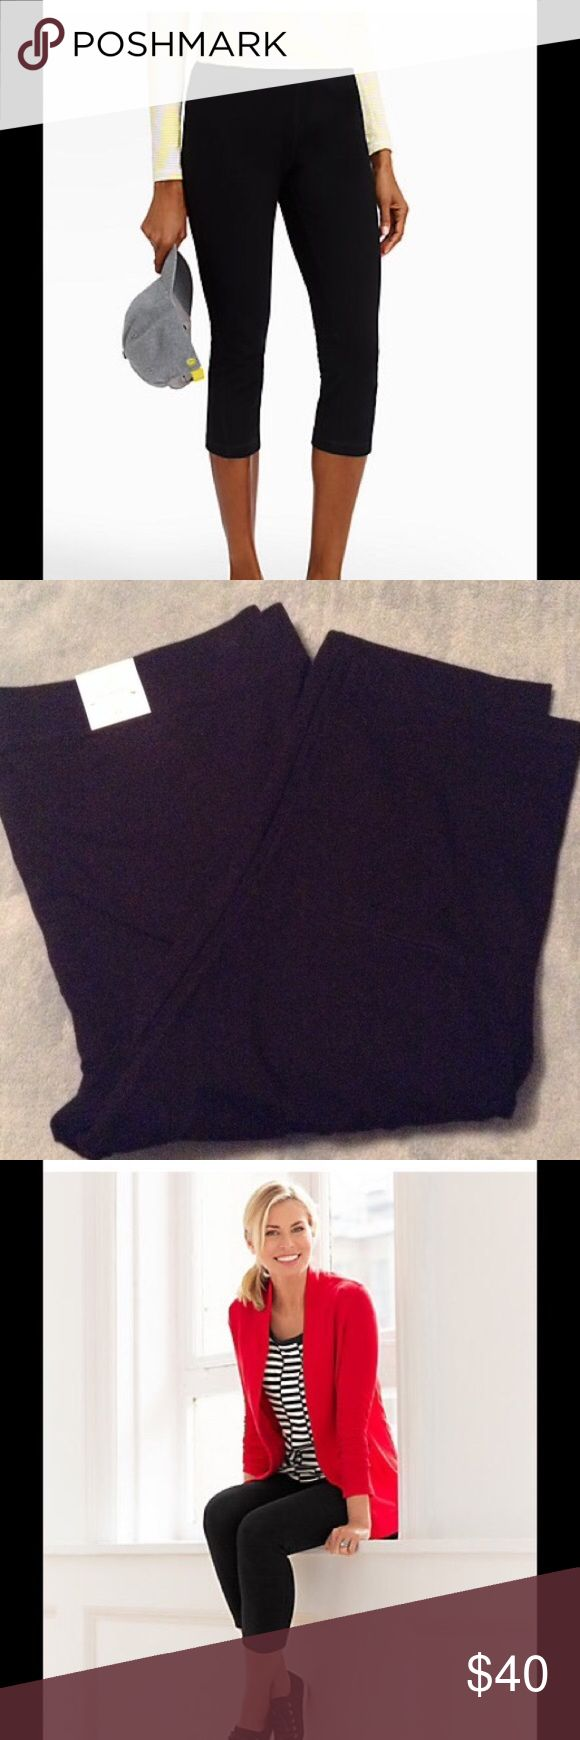 """Talbots Black Yoga Crop Pants The elastic waistband sits right below the belly button for optimal coverage that's easy-to-wear in comfortable cotton/spandex. Now available in an of-the-moment length, these ankle-grazing pants create the illusion of longer legs and pair perfectly with sporty sneakers. Pulls on Elastic waistband Inseam: Misses 21""""; Petite 19""""; Woman 21""""; Woman Petite 19"""" 89% Cotton/11% Spandex Machine Wash Imported Talbots Pants Ankle & Cropped"""